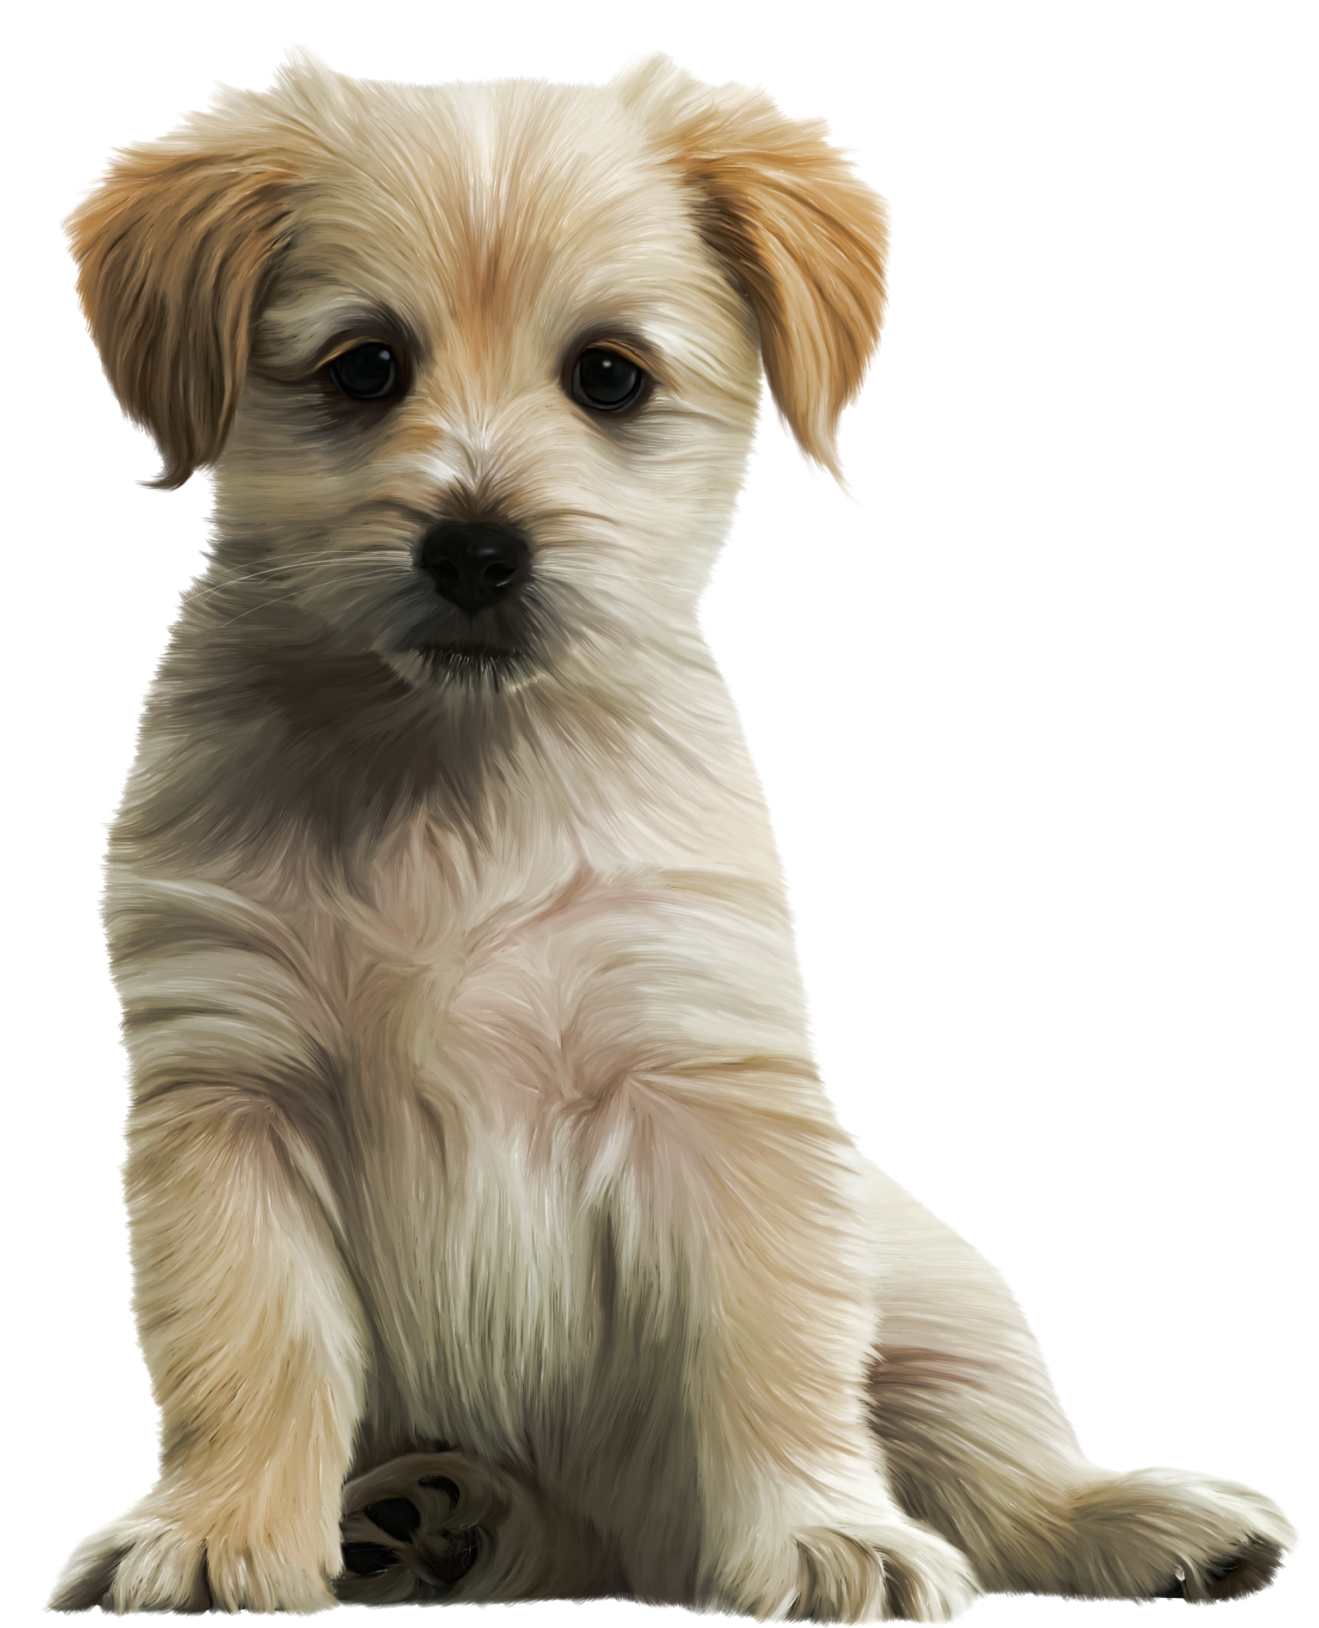 Cute Puppy PNG Clipart Image.